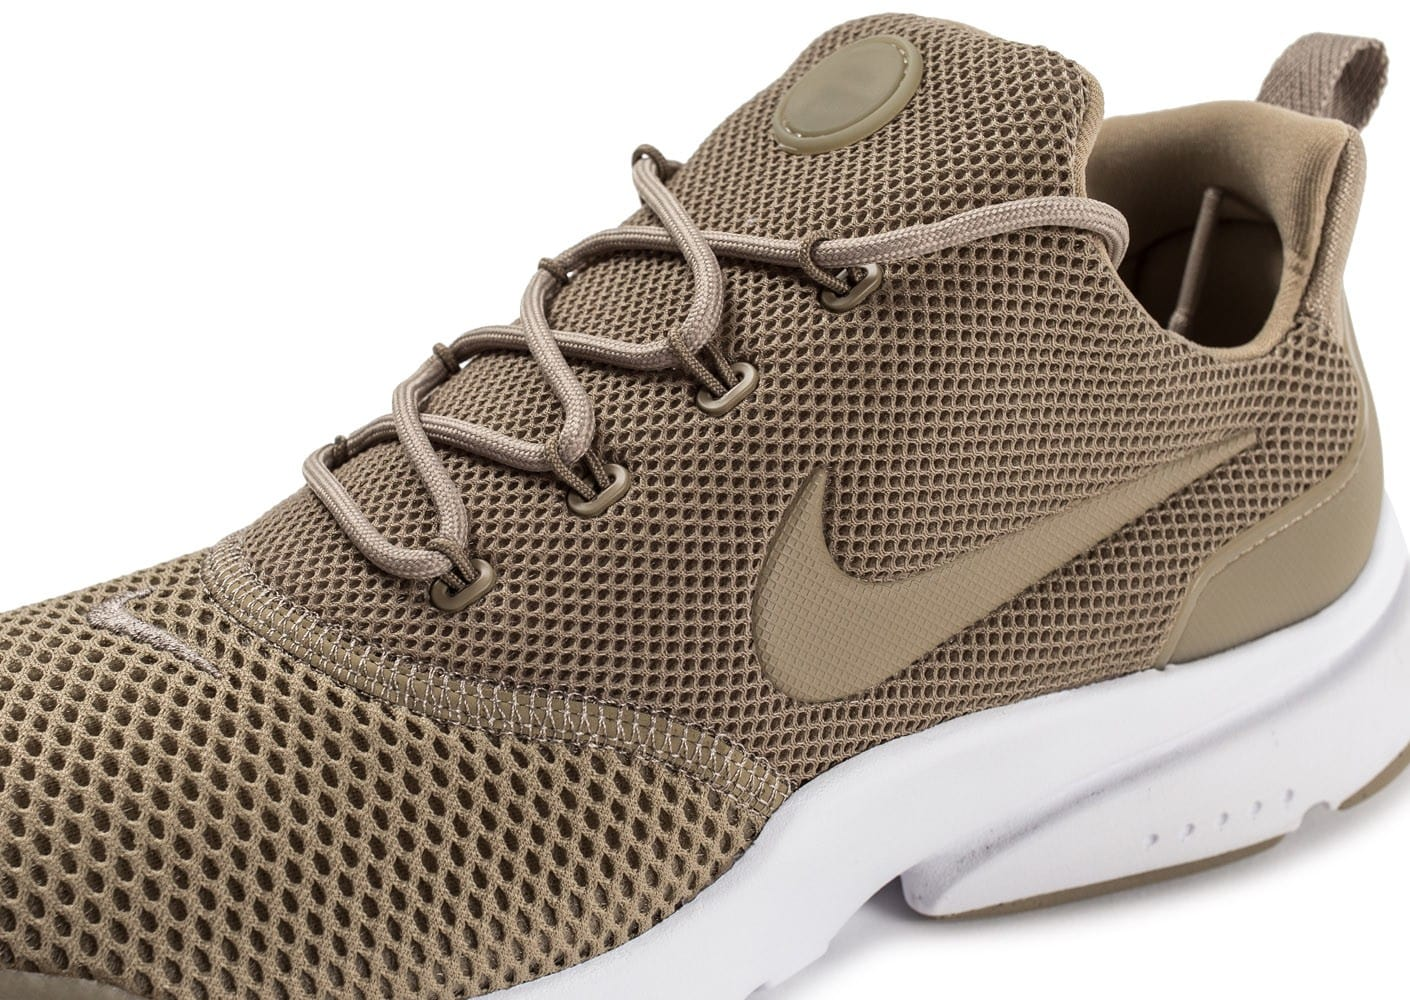 the best attitude e34d9 28a3c ... Chaussures Nike Presto Fly Khaki vue dessus